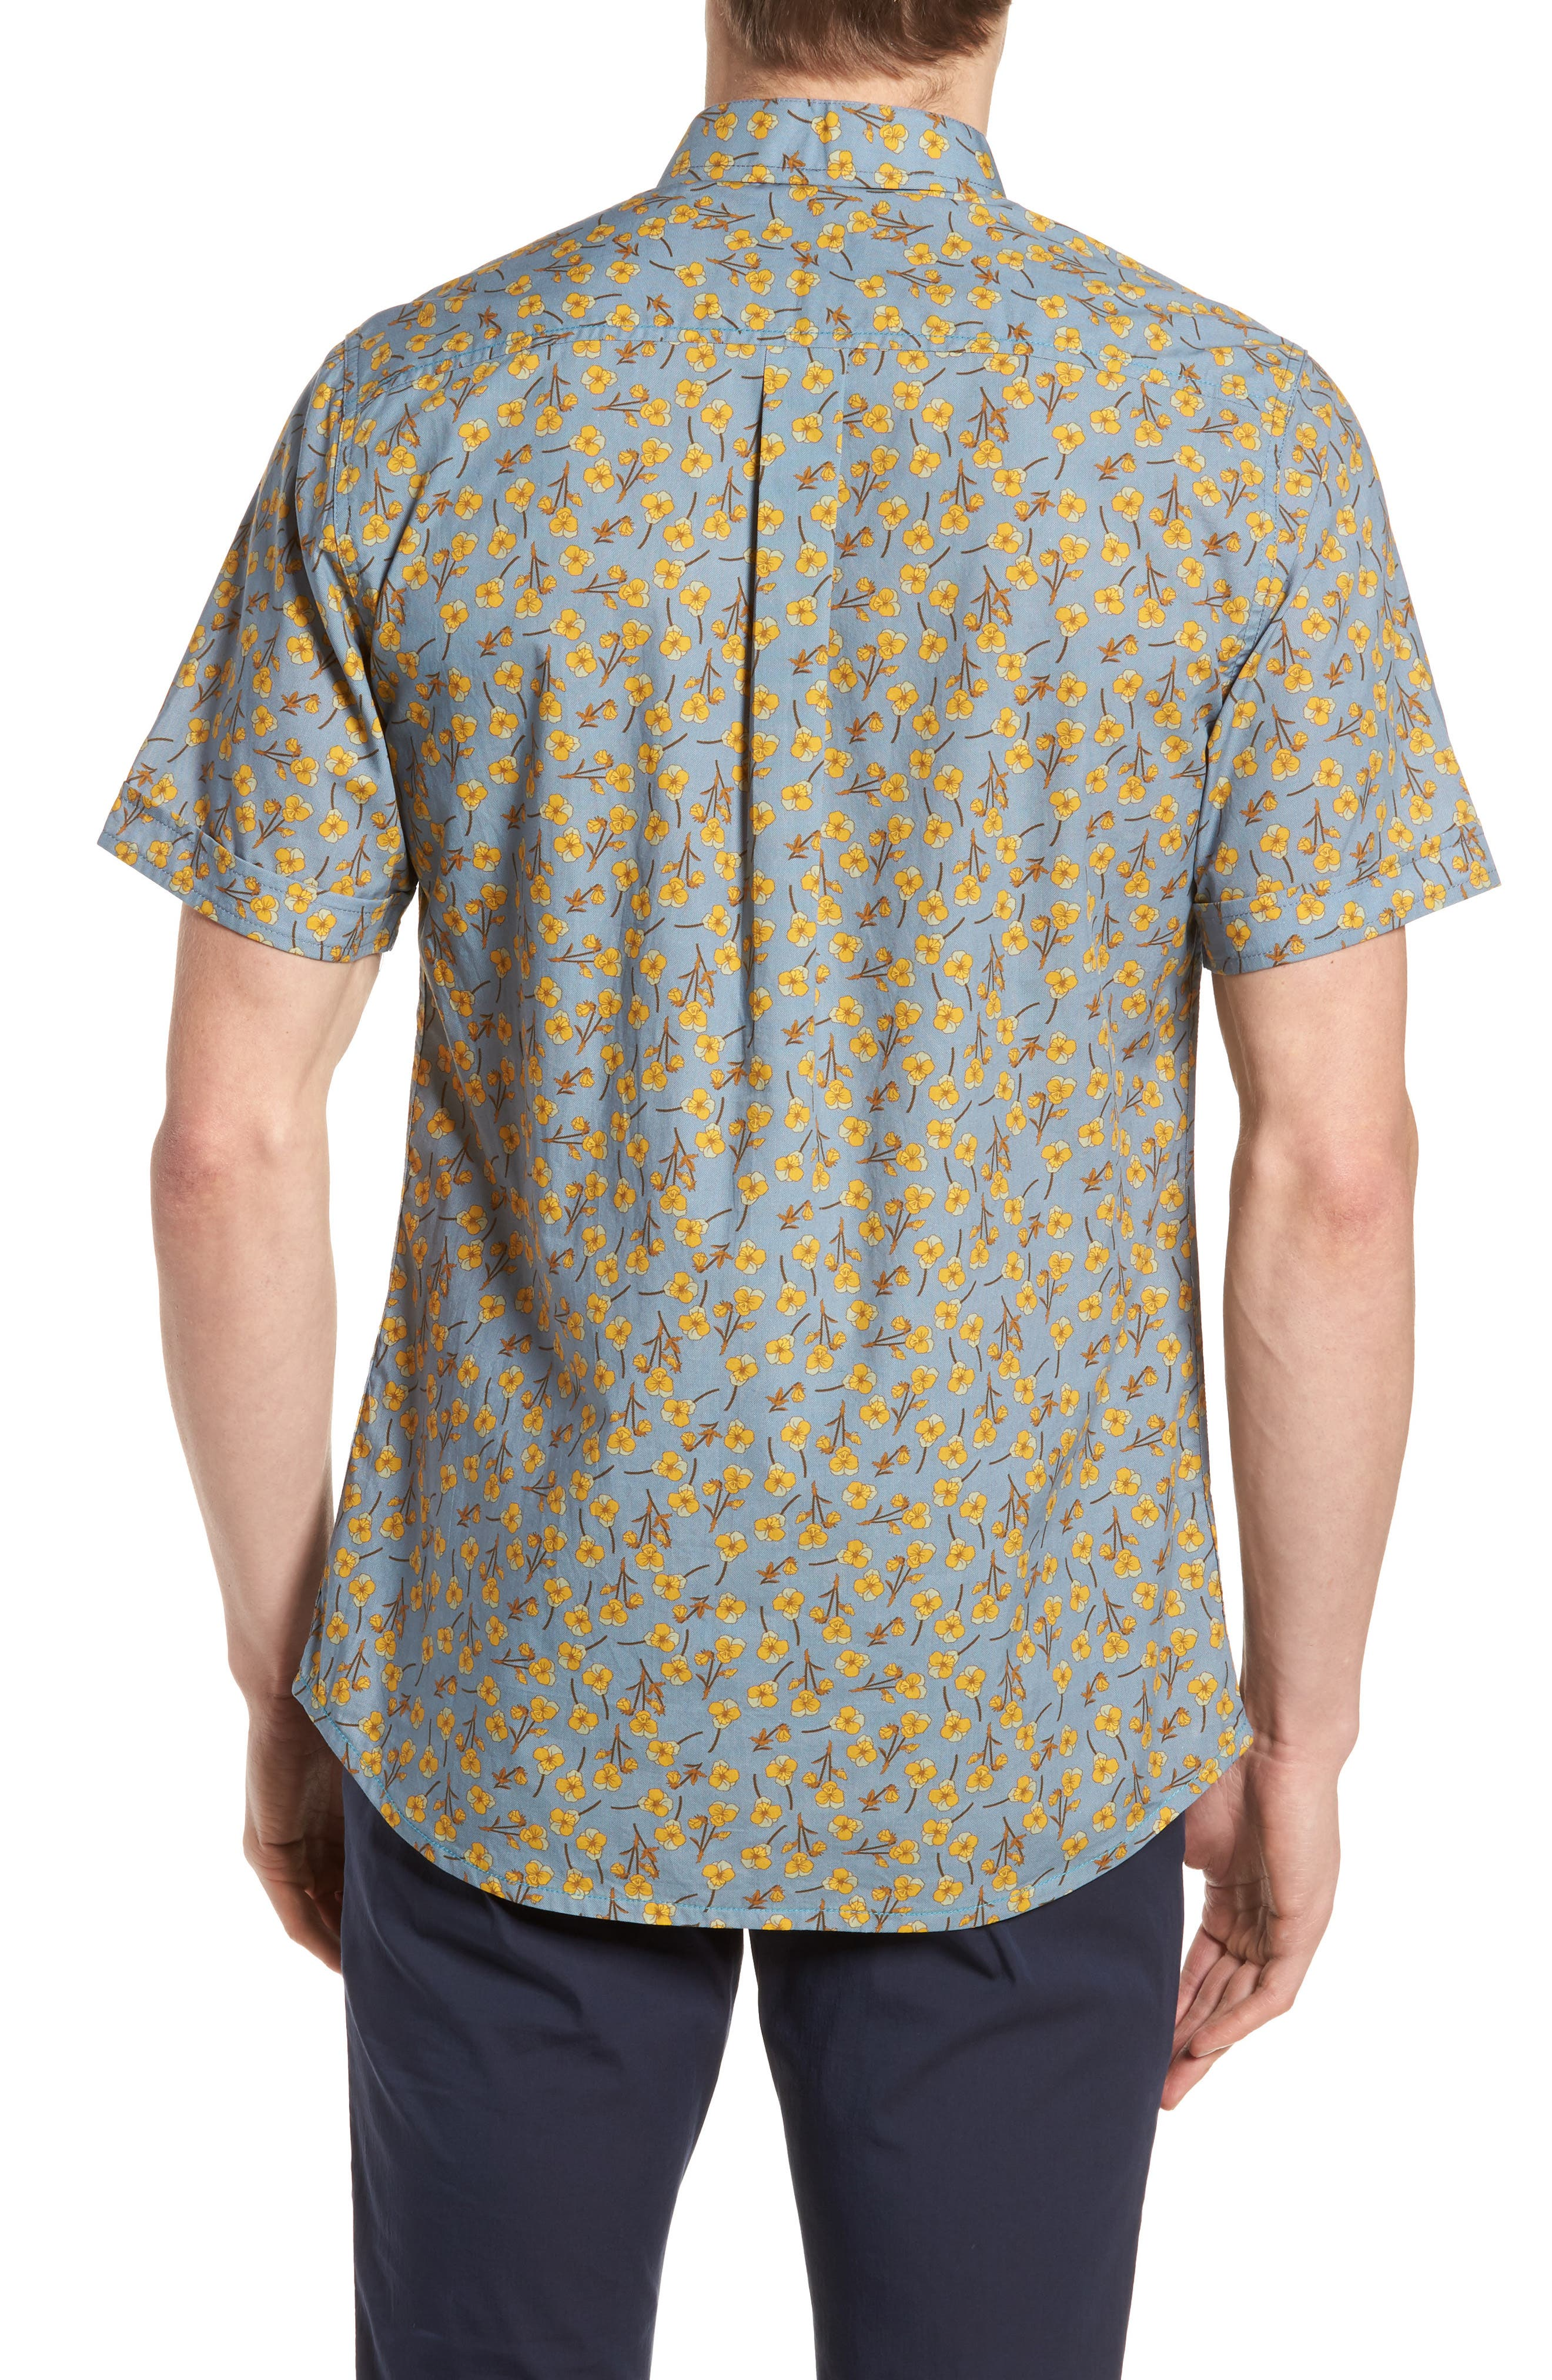 Golden Flower Shirt,                             Alternate thumbnail 2, color,                             400